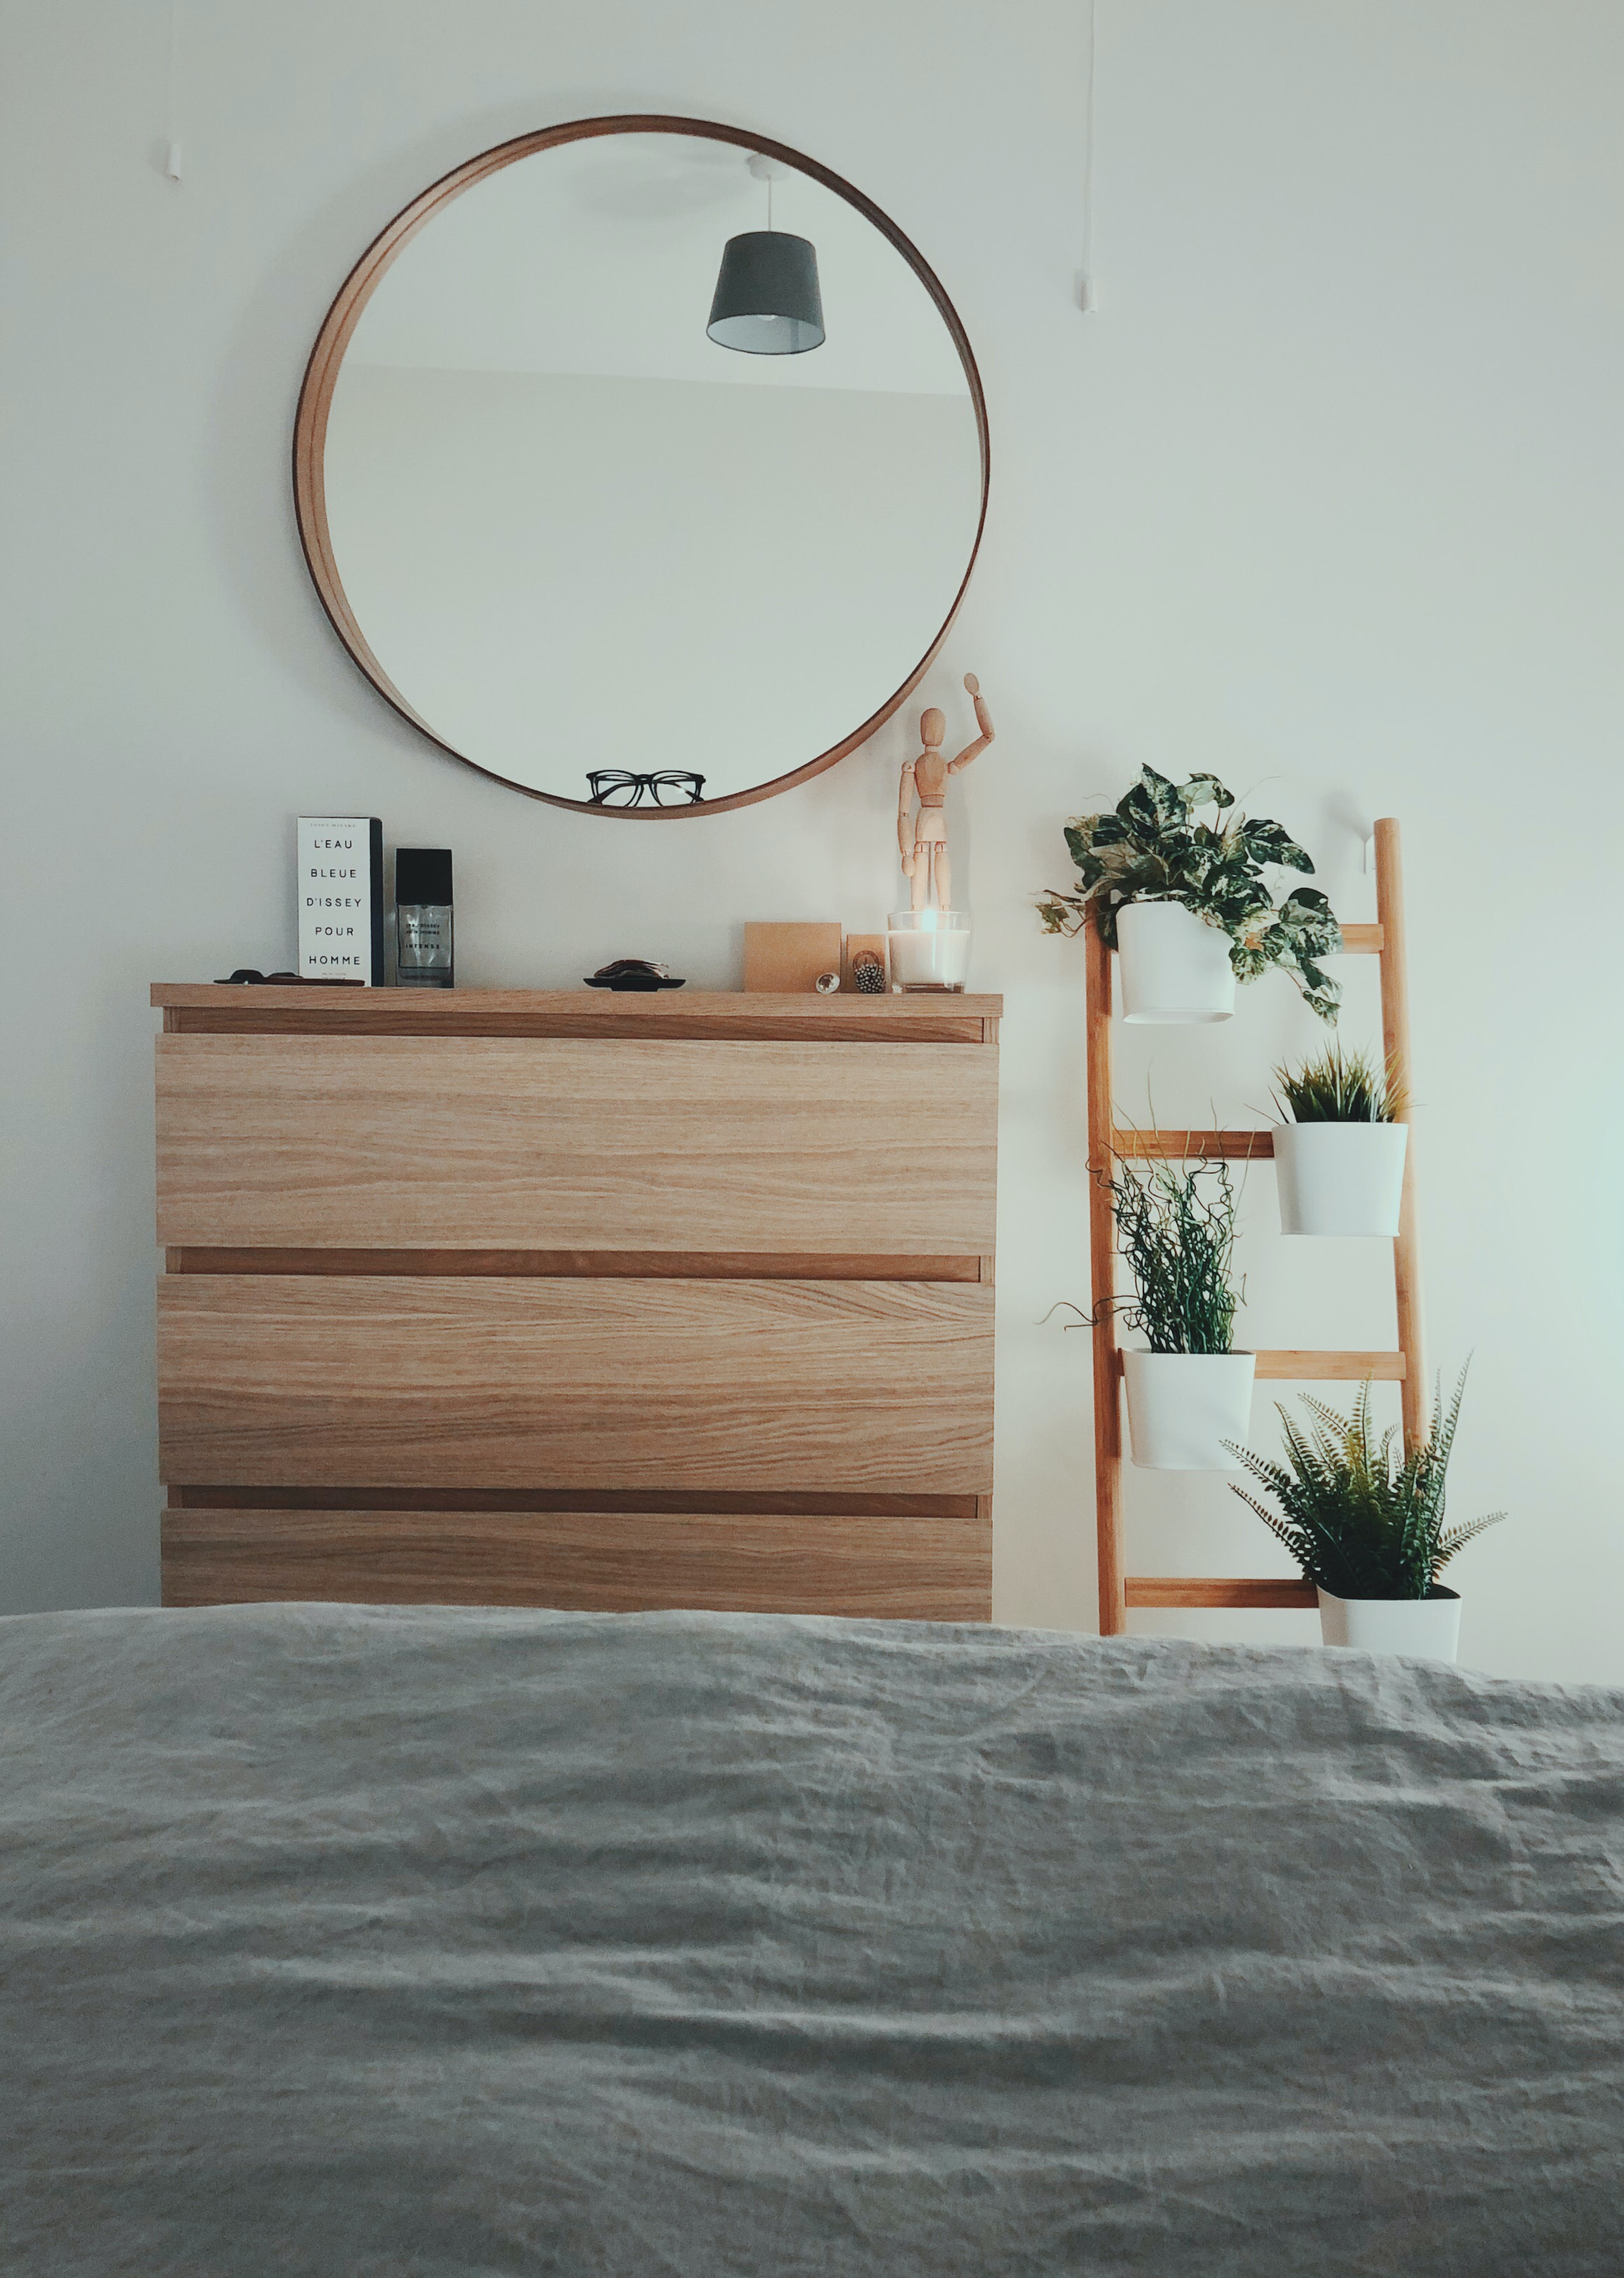 brown wooden 3-drawer chest with round brown wooden framed mirror in front of bed inside room